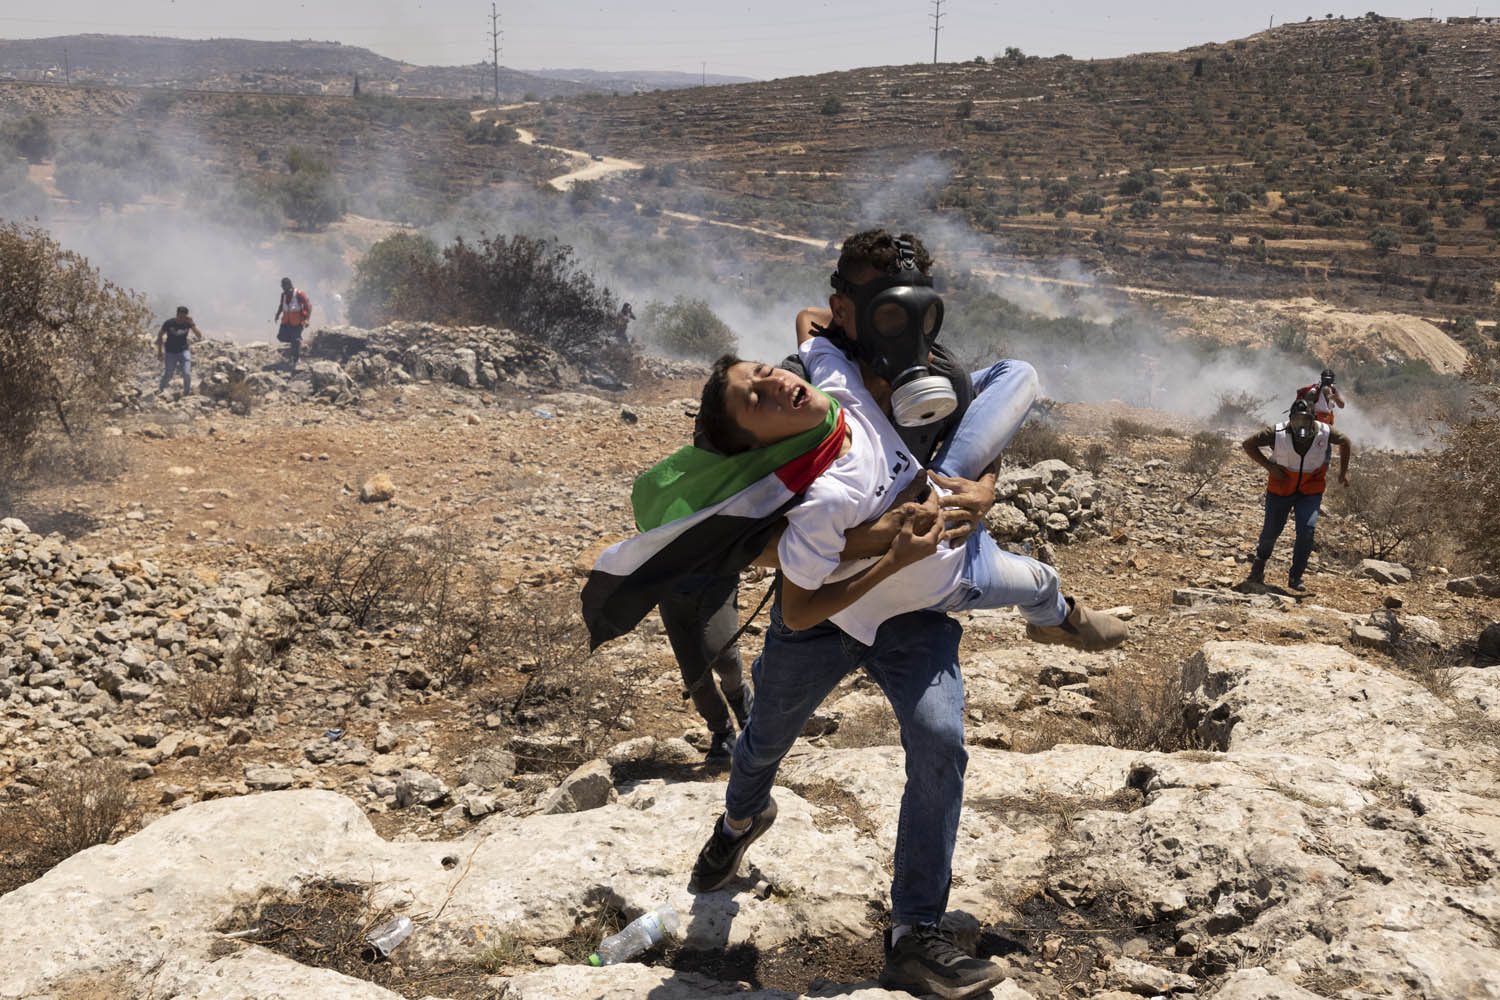 A Palestinian demonstrator is carried during a protest against the settlement outpost of Eviatar, Beita, West Bank, June 25, 2021. (Oren Ziv)